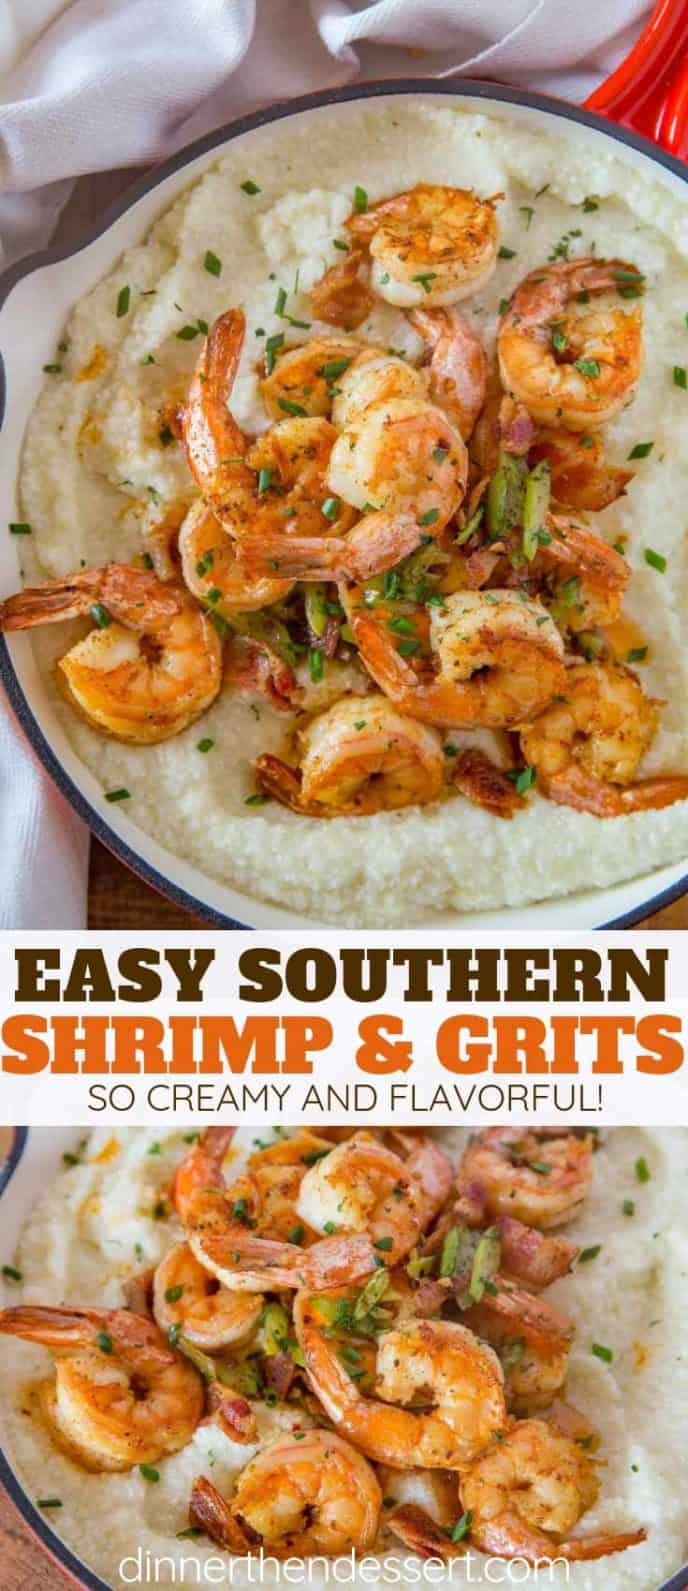 Easy Flavorful Shrimp and Grits